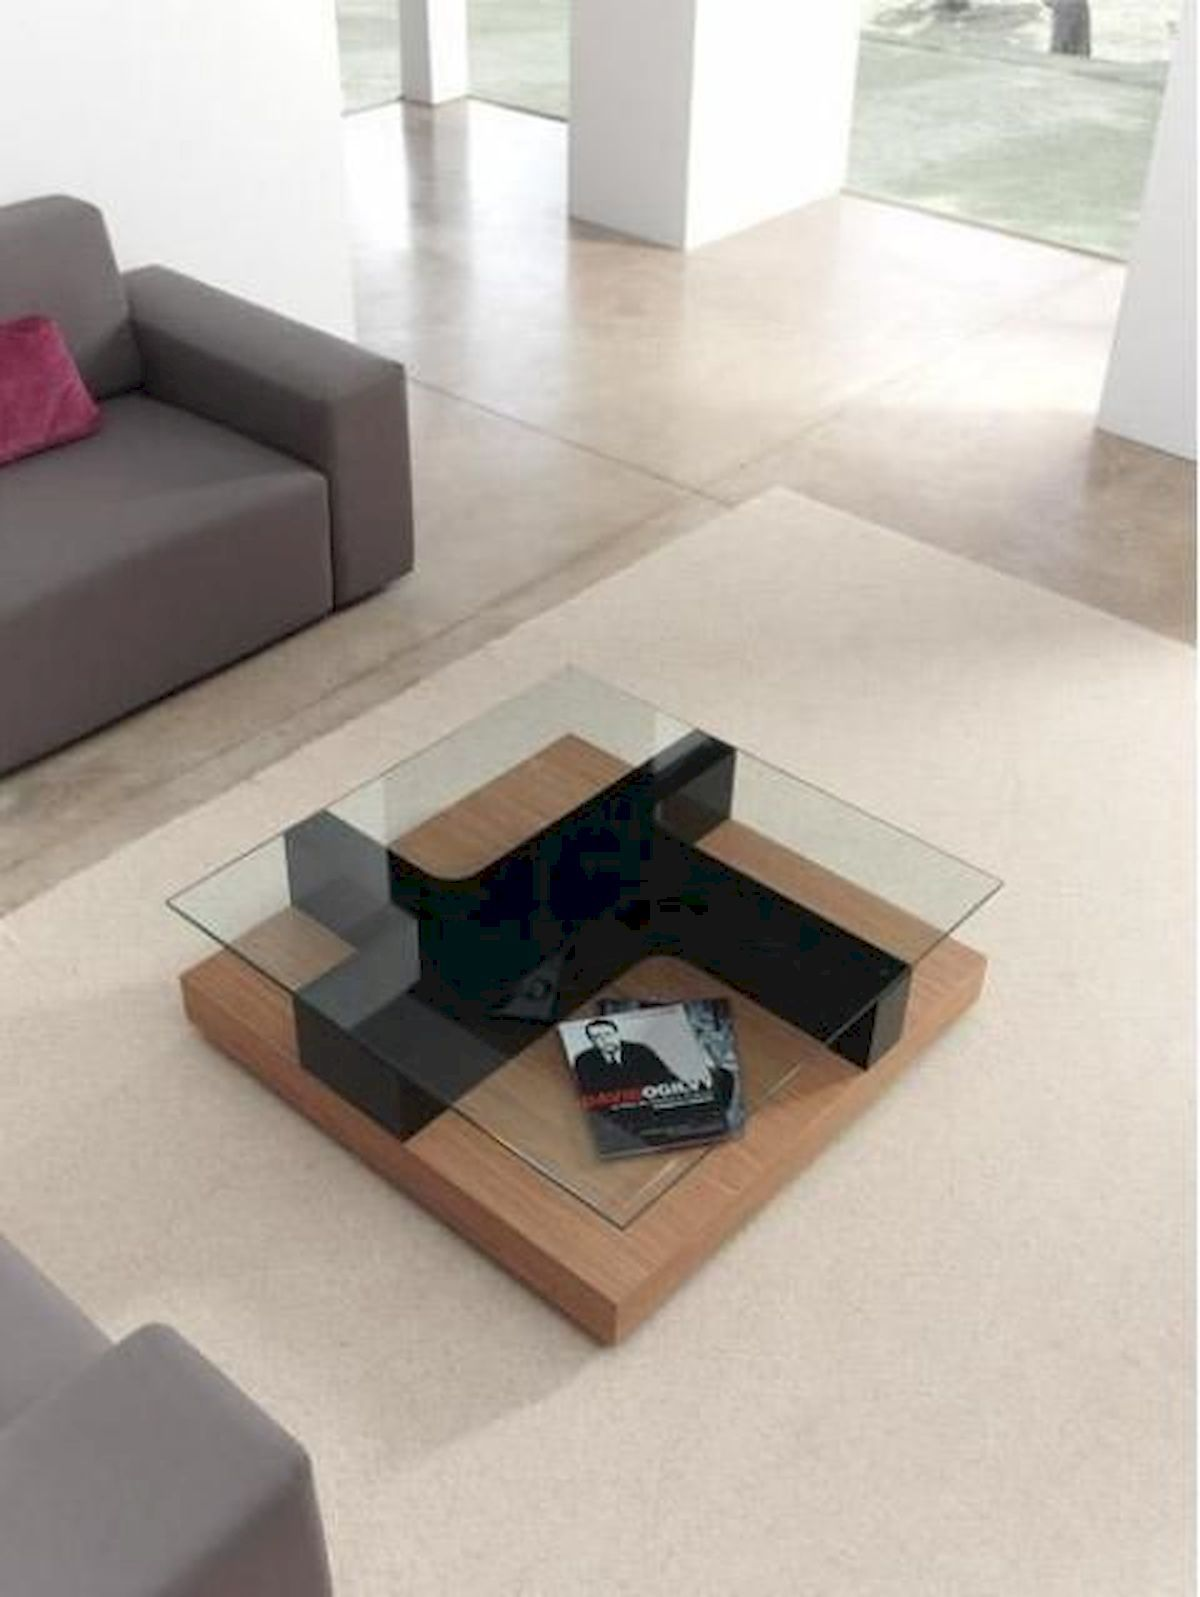 Pin By Fj Cava On Assets For Mailer Wooden Coffee Table Designs Coffee Table Furniture Wood Coffee Table Design [ 1196 x 1792 Pixel ]